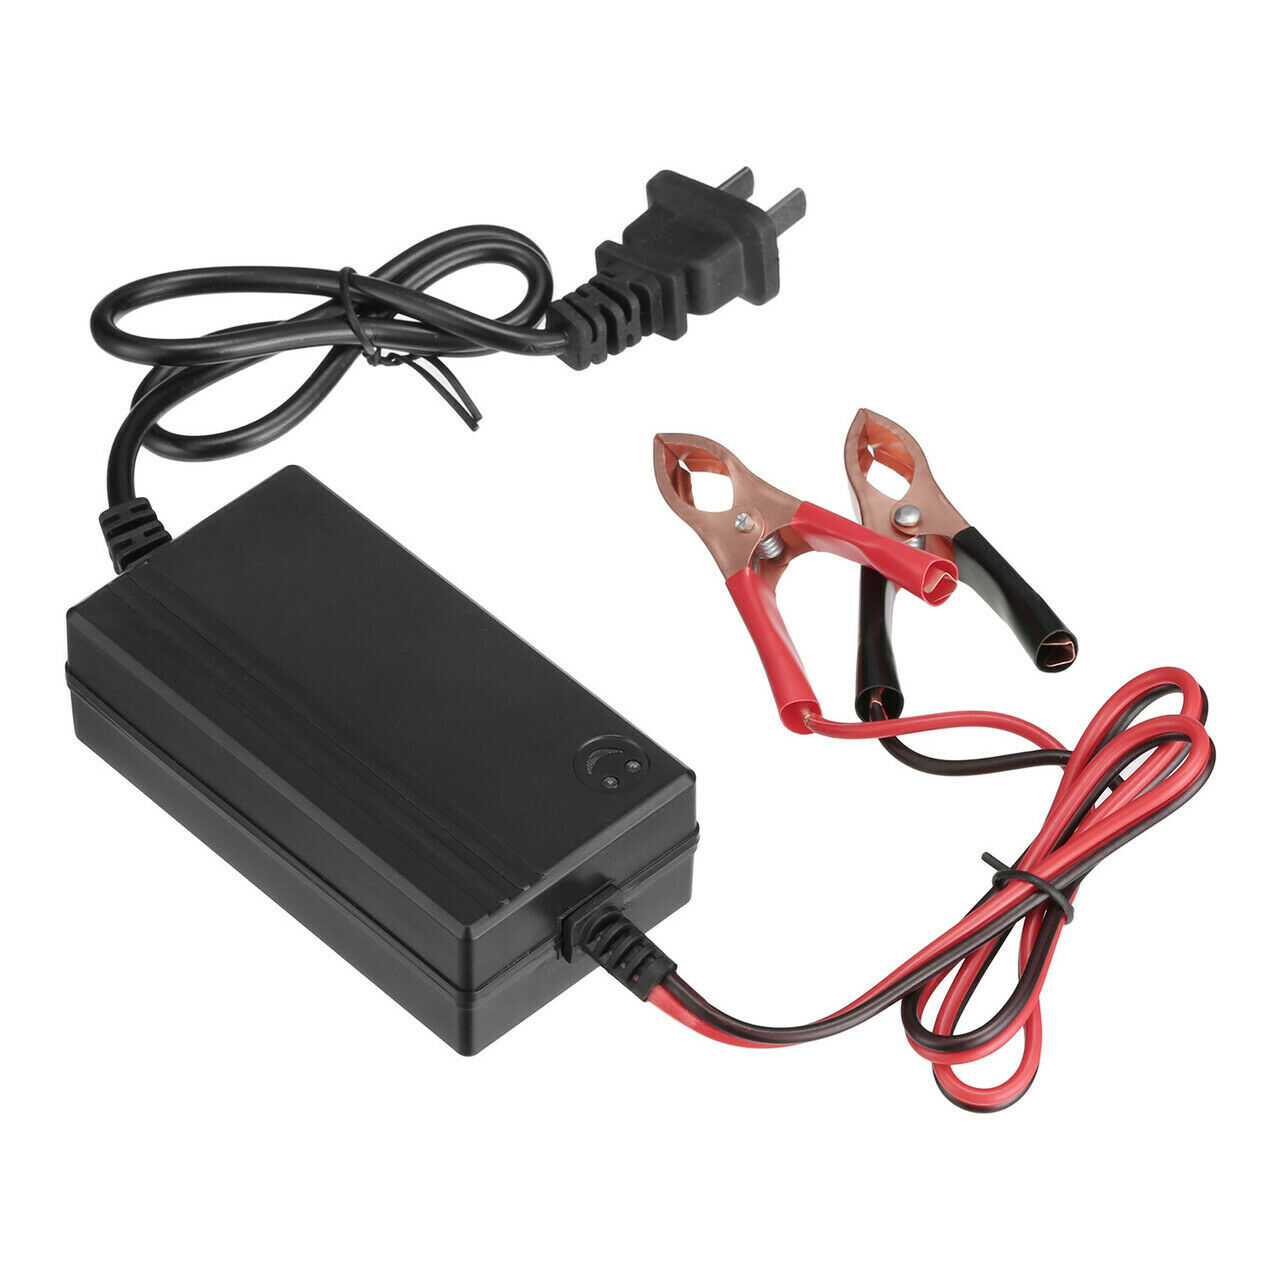 2x Np Bn1 Li Ion N Type Rechargeable Battery Chargers For Sony Cybershot 1 Of 9free Shipping